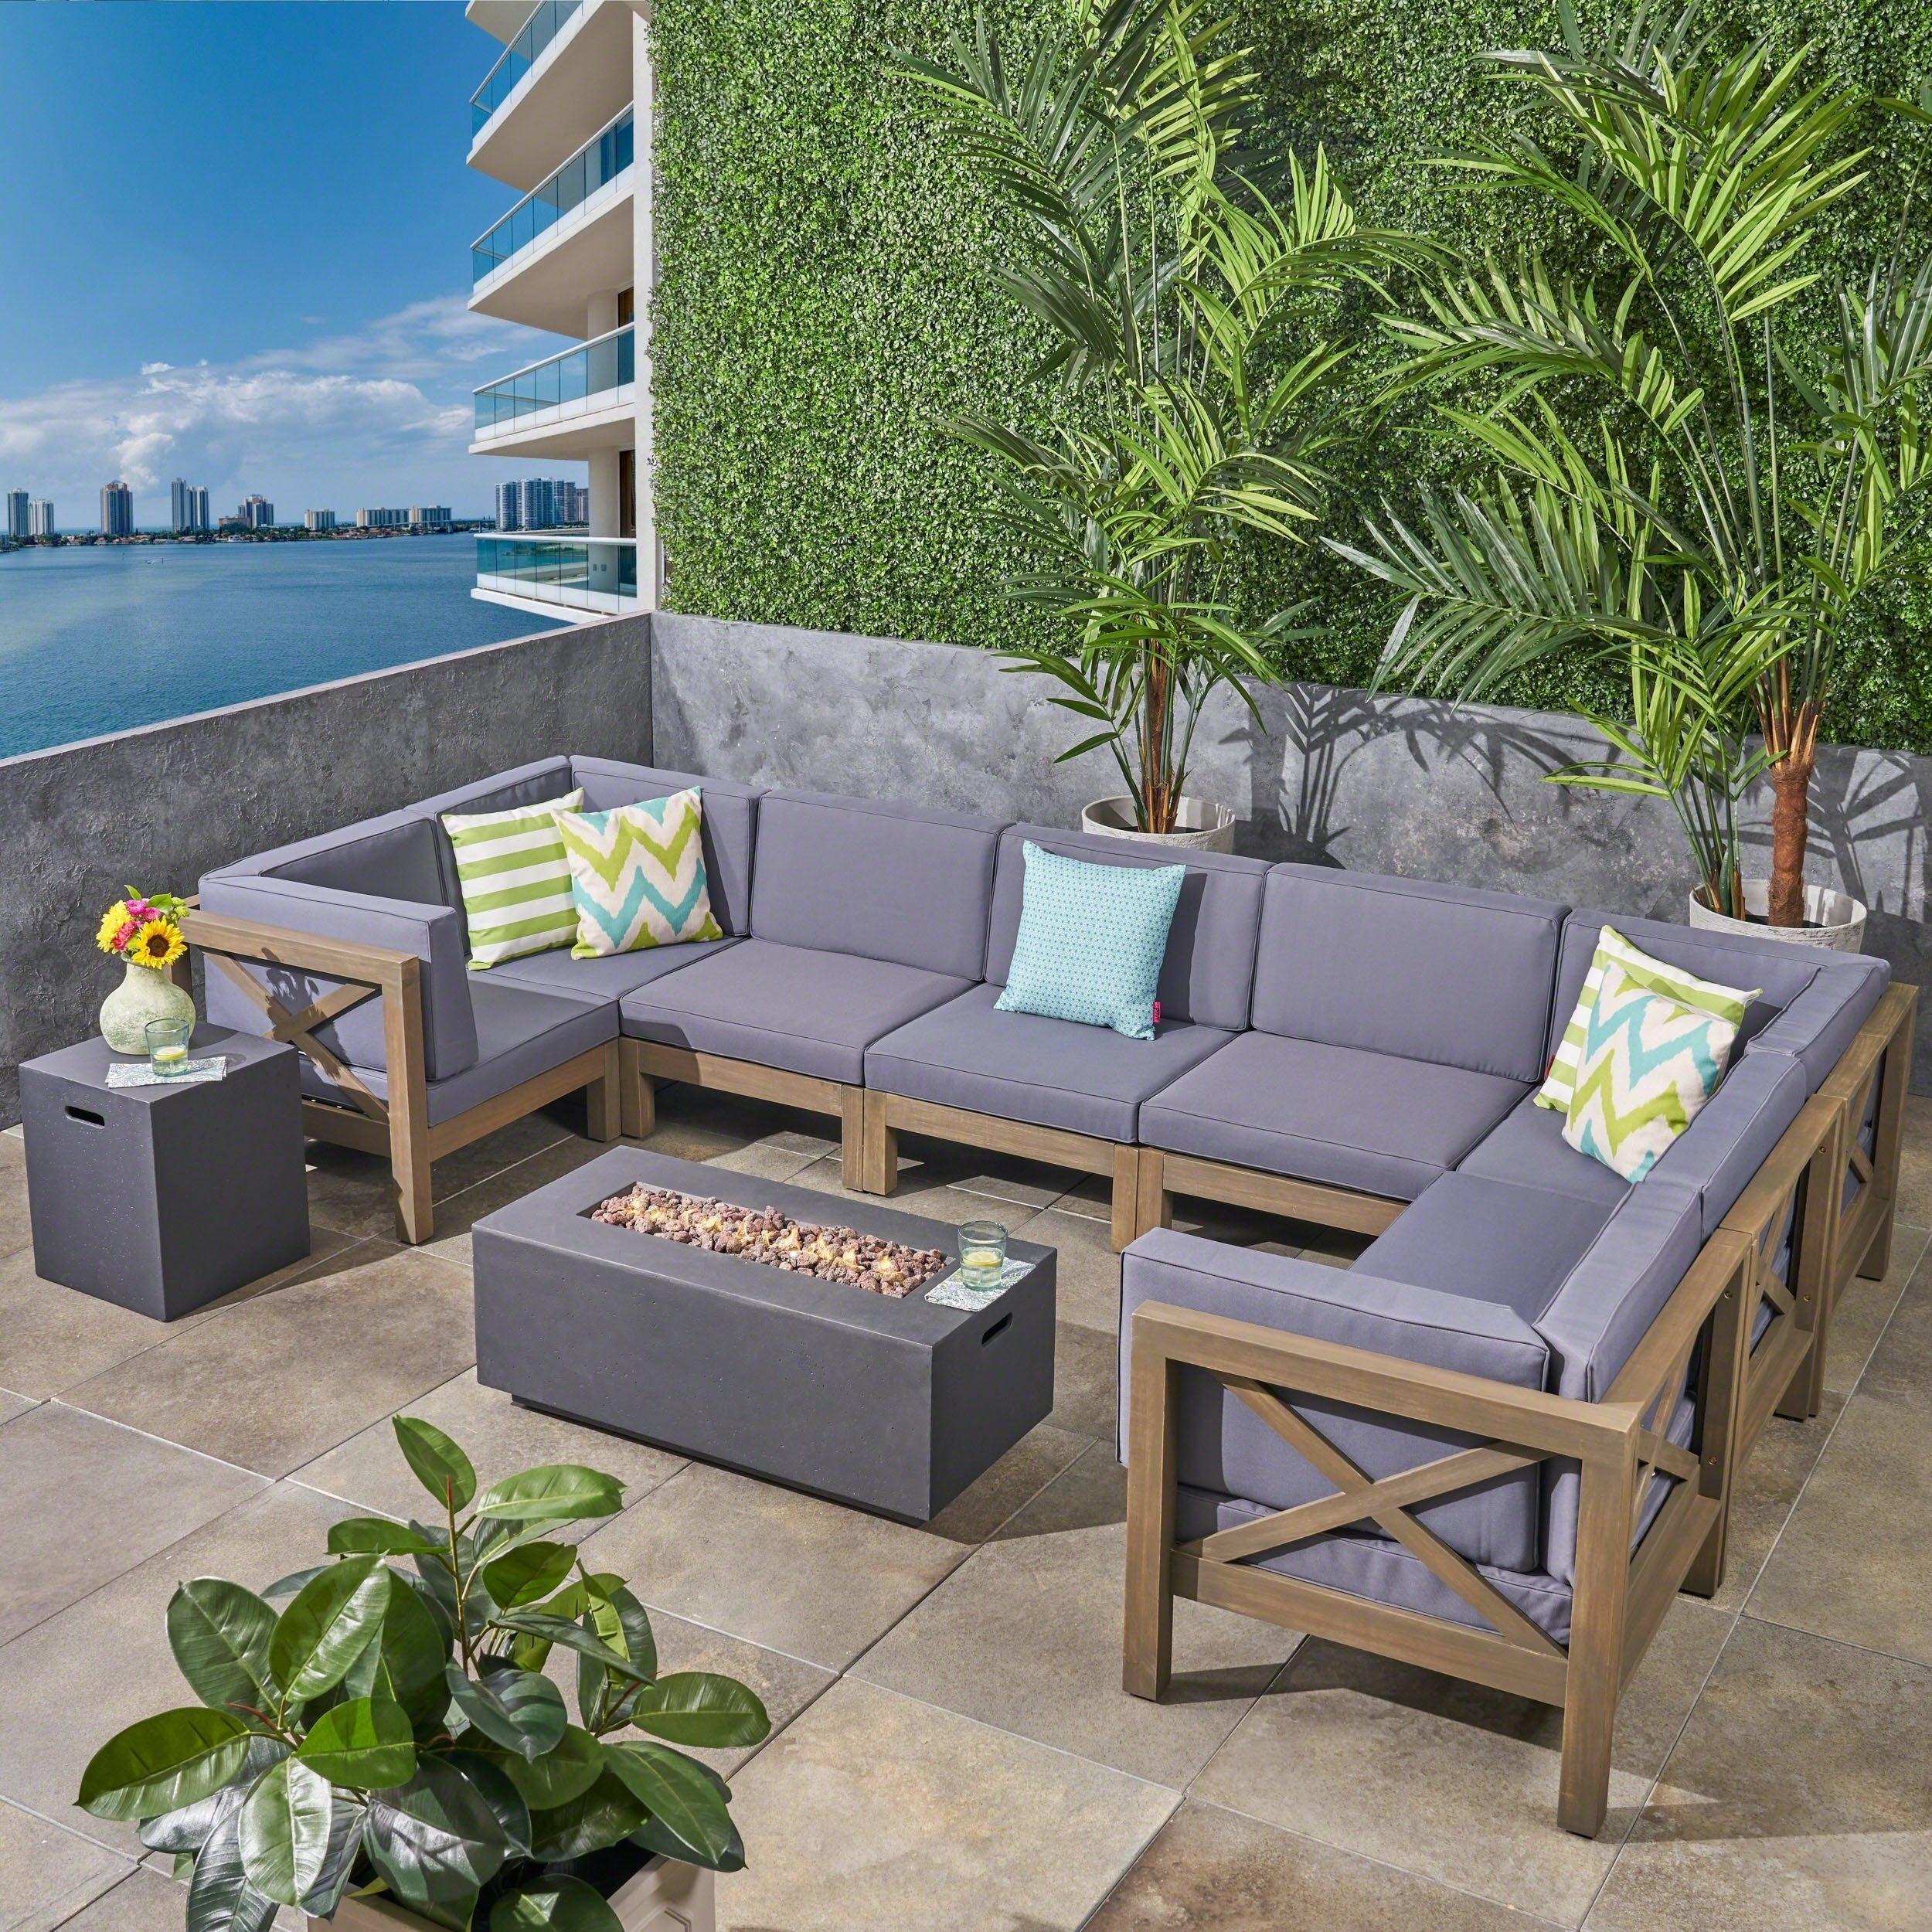 Brava Outdoor 10 Piece Acacia Wood Sectional Sofa Set With Fire Pit